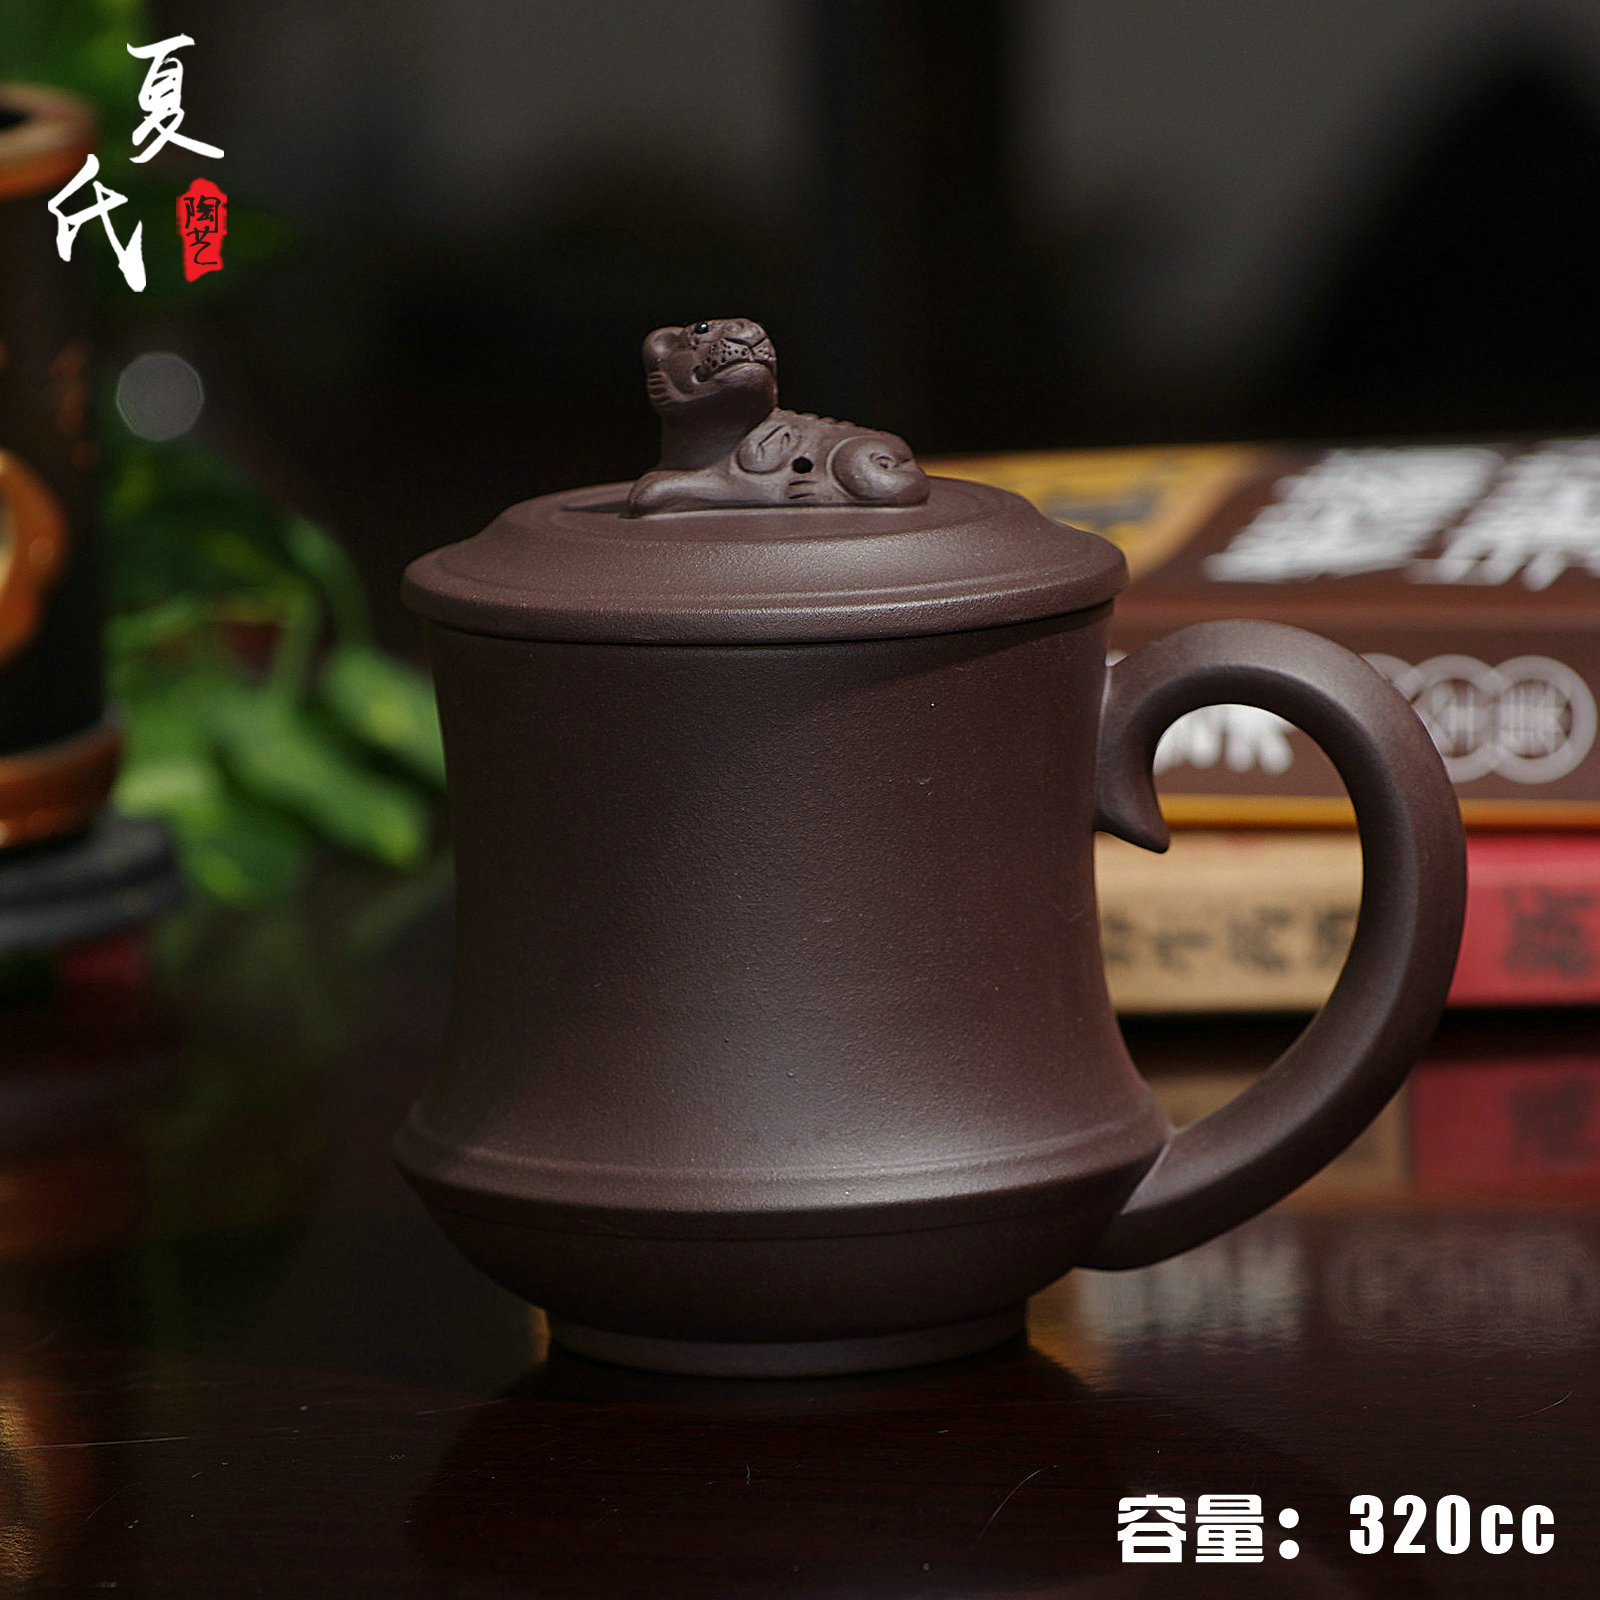 320CC Chinese Kung Fu Teacup Purple Clay Tea Cup Offices Friend Gifts Ore Mug Creative Drinkware